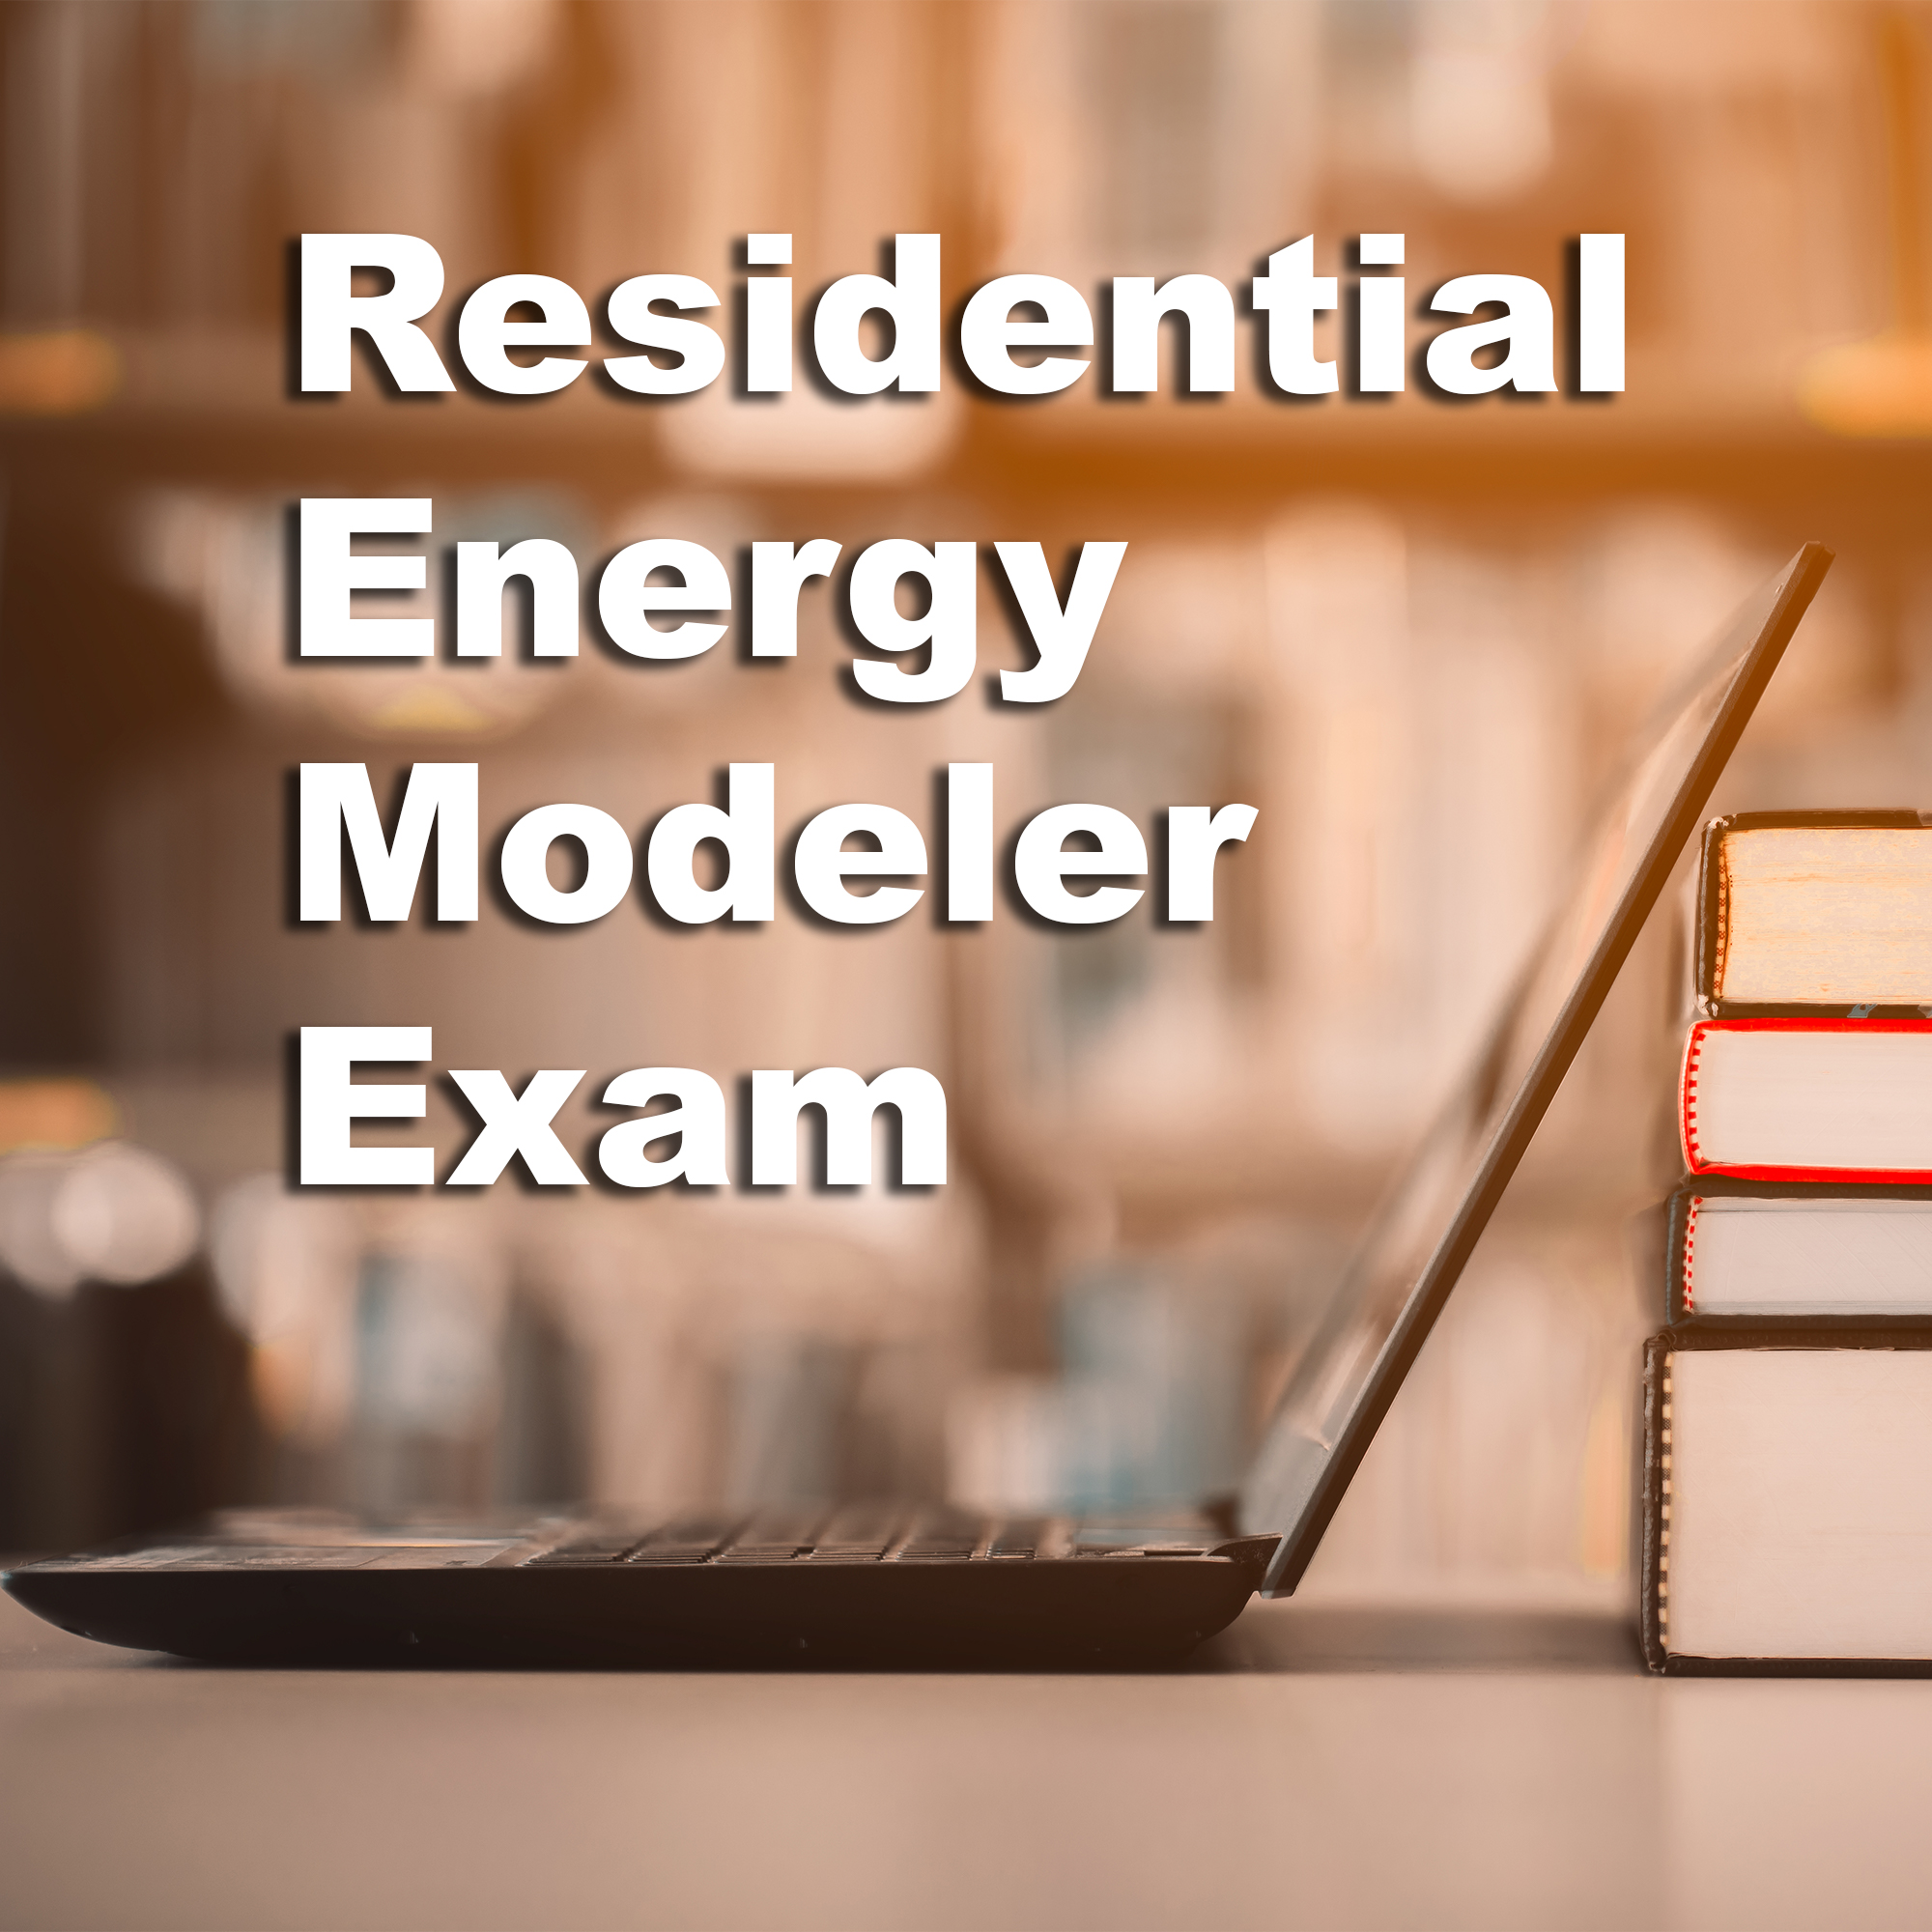 Residential Energy Modeler Exam